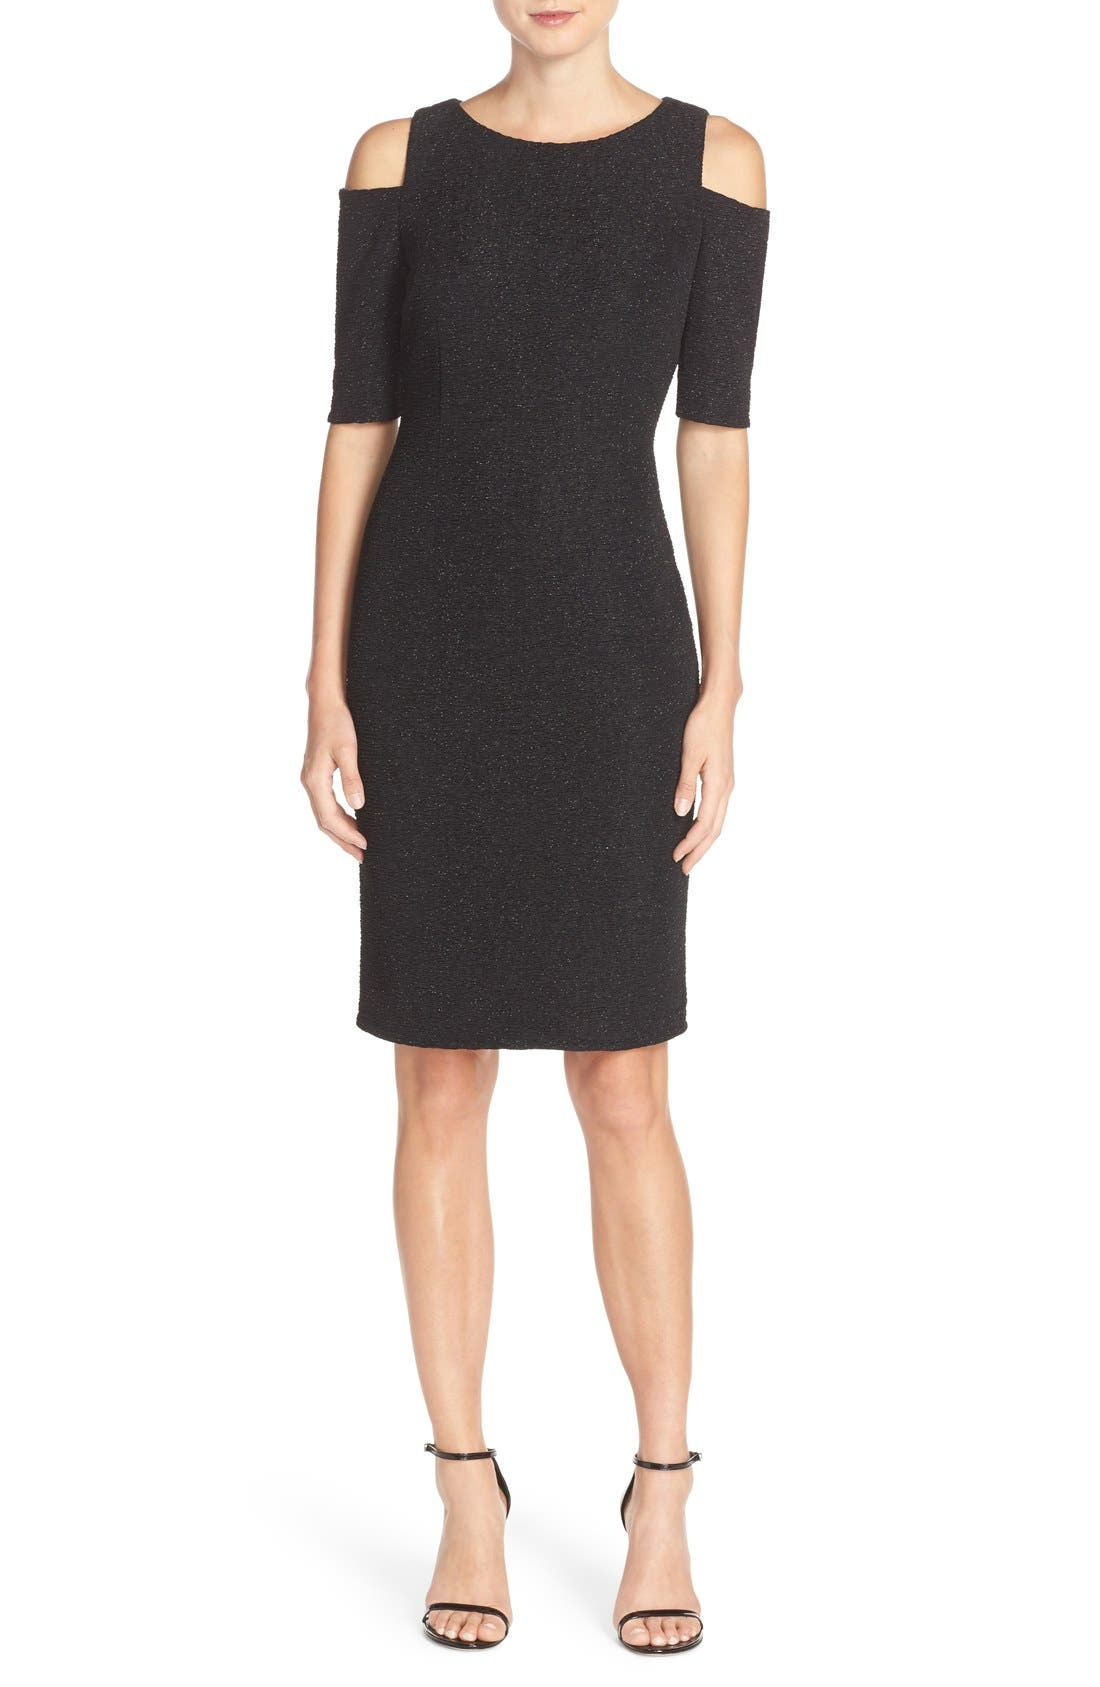 ELIZA J Cold Shoulder Sparkle Knit Sheath Dress